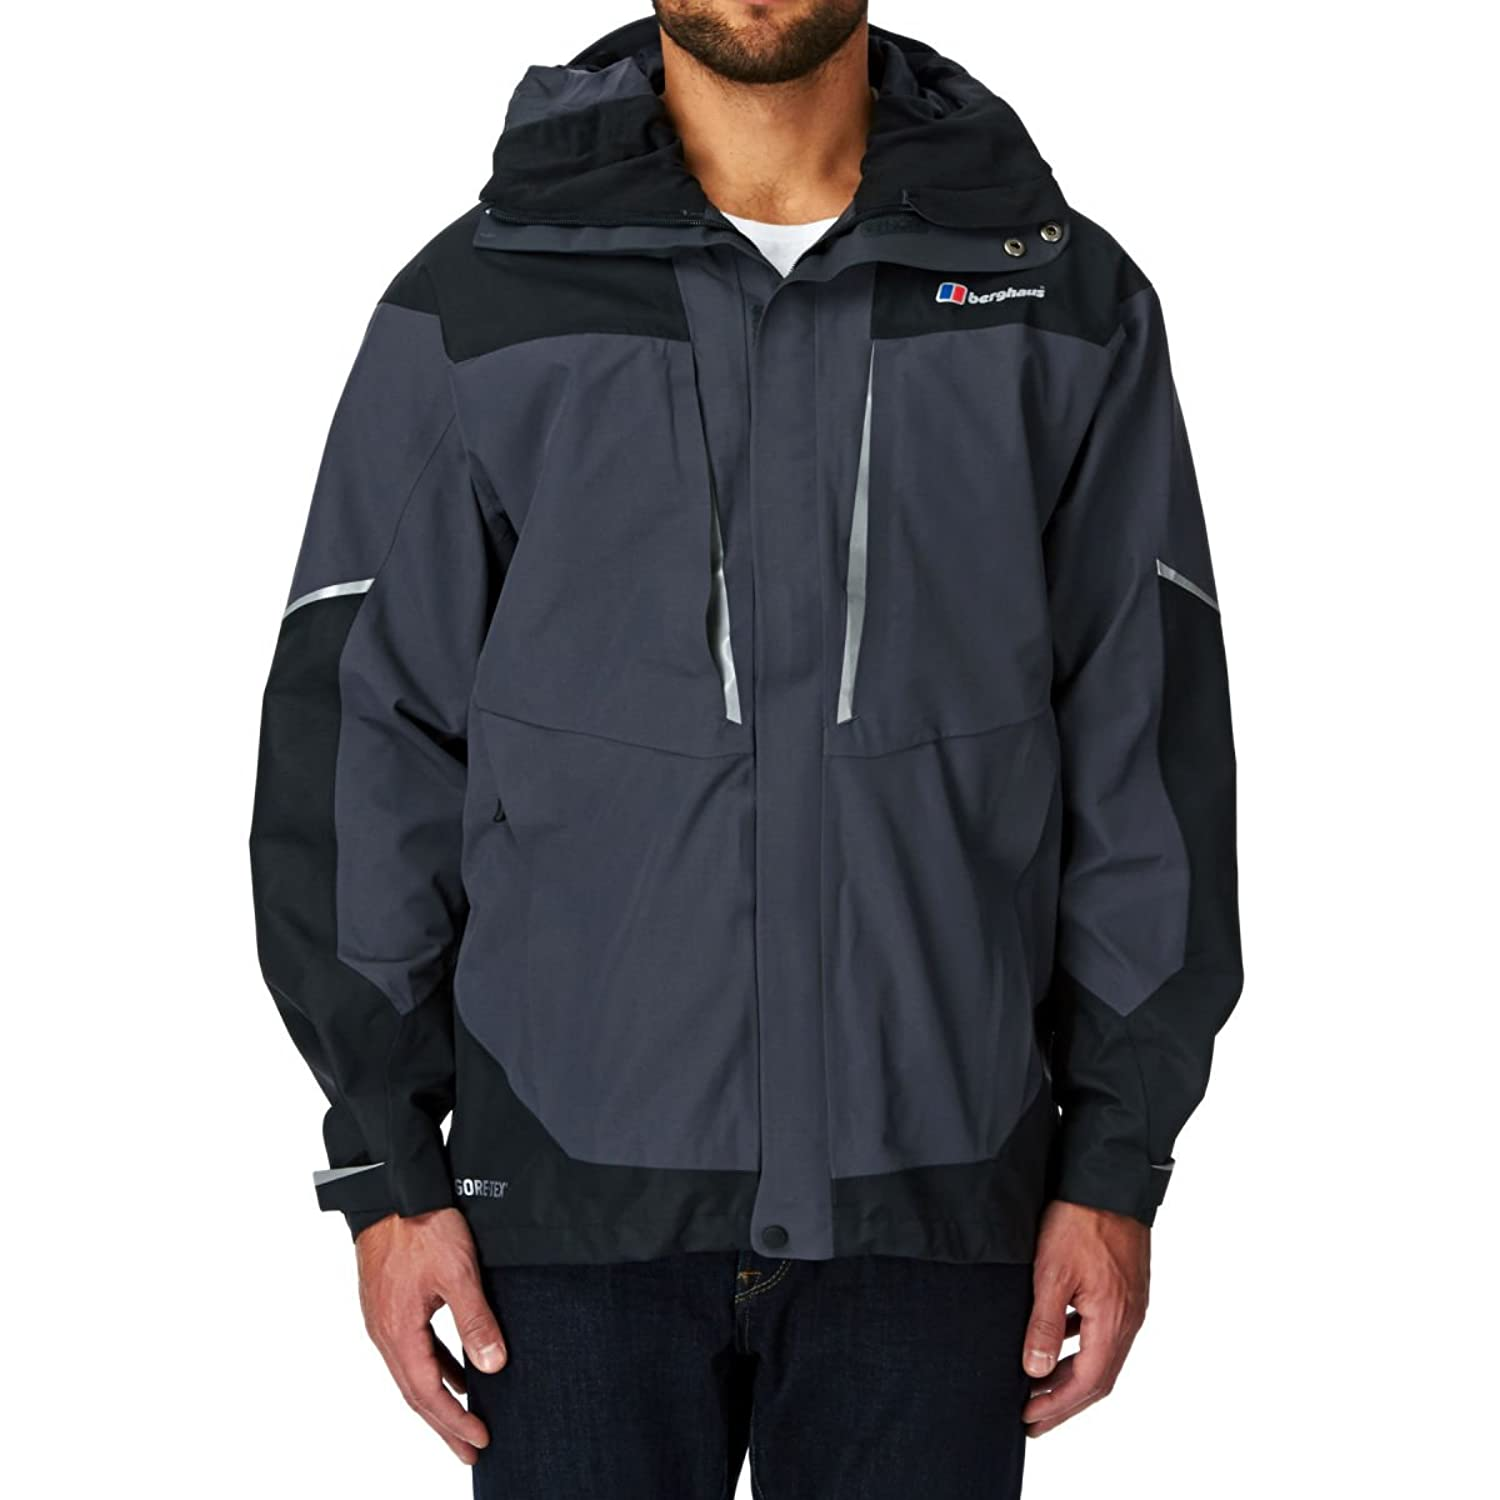 Berghaus Mera Peak Iv Jacket - Carbon / Black